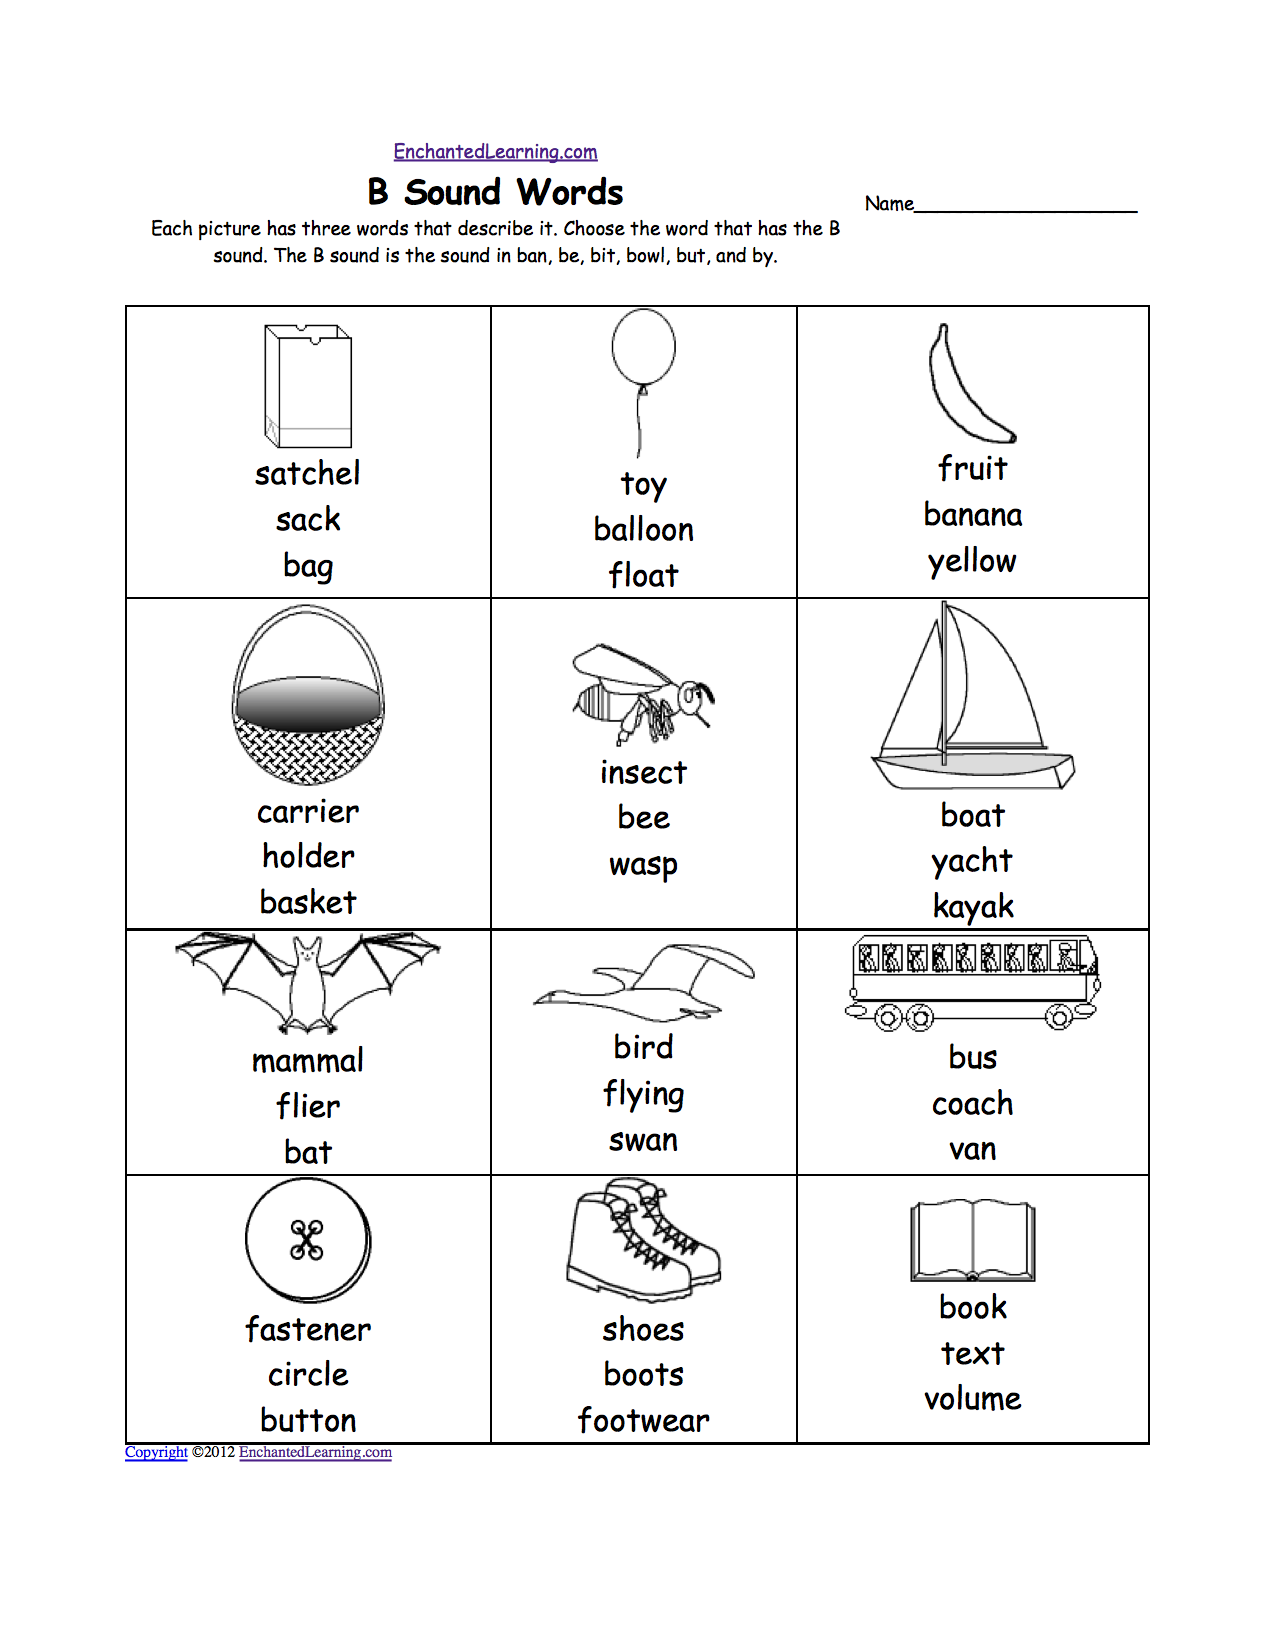 Weirdmailus  Remarkable Phonics Worksheets Multiple Choice Worksheets To Print  With Fascinating Quotbquot Sound Phonics Worksheet Multiple Choice Each Picture Has Three Words That Describe It Choose The Word That Has A Quotbquot Sound The Quotbquot Sound Is The Sound  With Breathtaking Math Subtraction Worksheets For St Grade Also Be Verb Worksheet In Addition Odd One Out Worksheets For Kindergarten And Worksheet On Fractions For Grade  As Well As Pie Charts Ks Worksheets Additionally Nouns Singular And Plural Worksheets From Enchantedlearningcom With Weirdmailus  Fascinating Phonics Worksheets Multiple Choice Worksheets To Print  With Breathtaking Quotbquot Sound Phonics Worksheet Multiple Choice Each Picture Has Three Words That Describe It Choose The Word That Has A Quotbquot Sound The Quotbquot Sound Is The Sound  And Remarkable Math Subtraction Worksheets For St Grade Also Be Verb Worksheet In Addition Odd One Out Worksheets For Kindergarten From Enchantedlearningcom